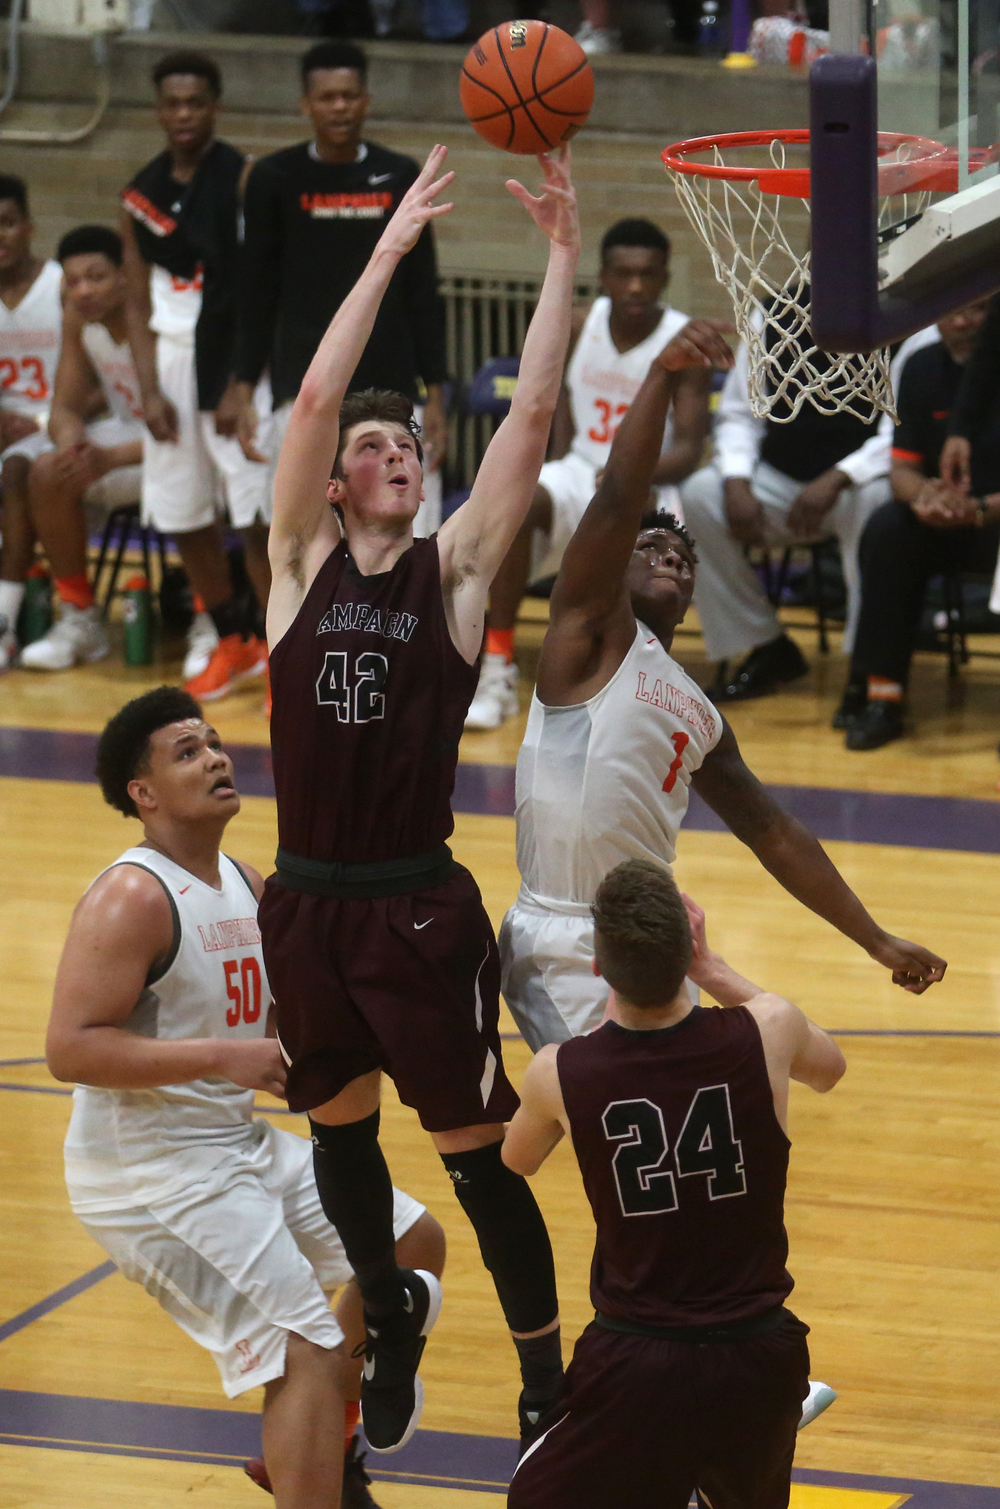 Champaign Central's Nick Finke used his height advantage to grabe this rebound late in the game while Lanphier's Yaakema Rose also goes up for it at right.David Spencer/The State Journal Register